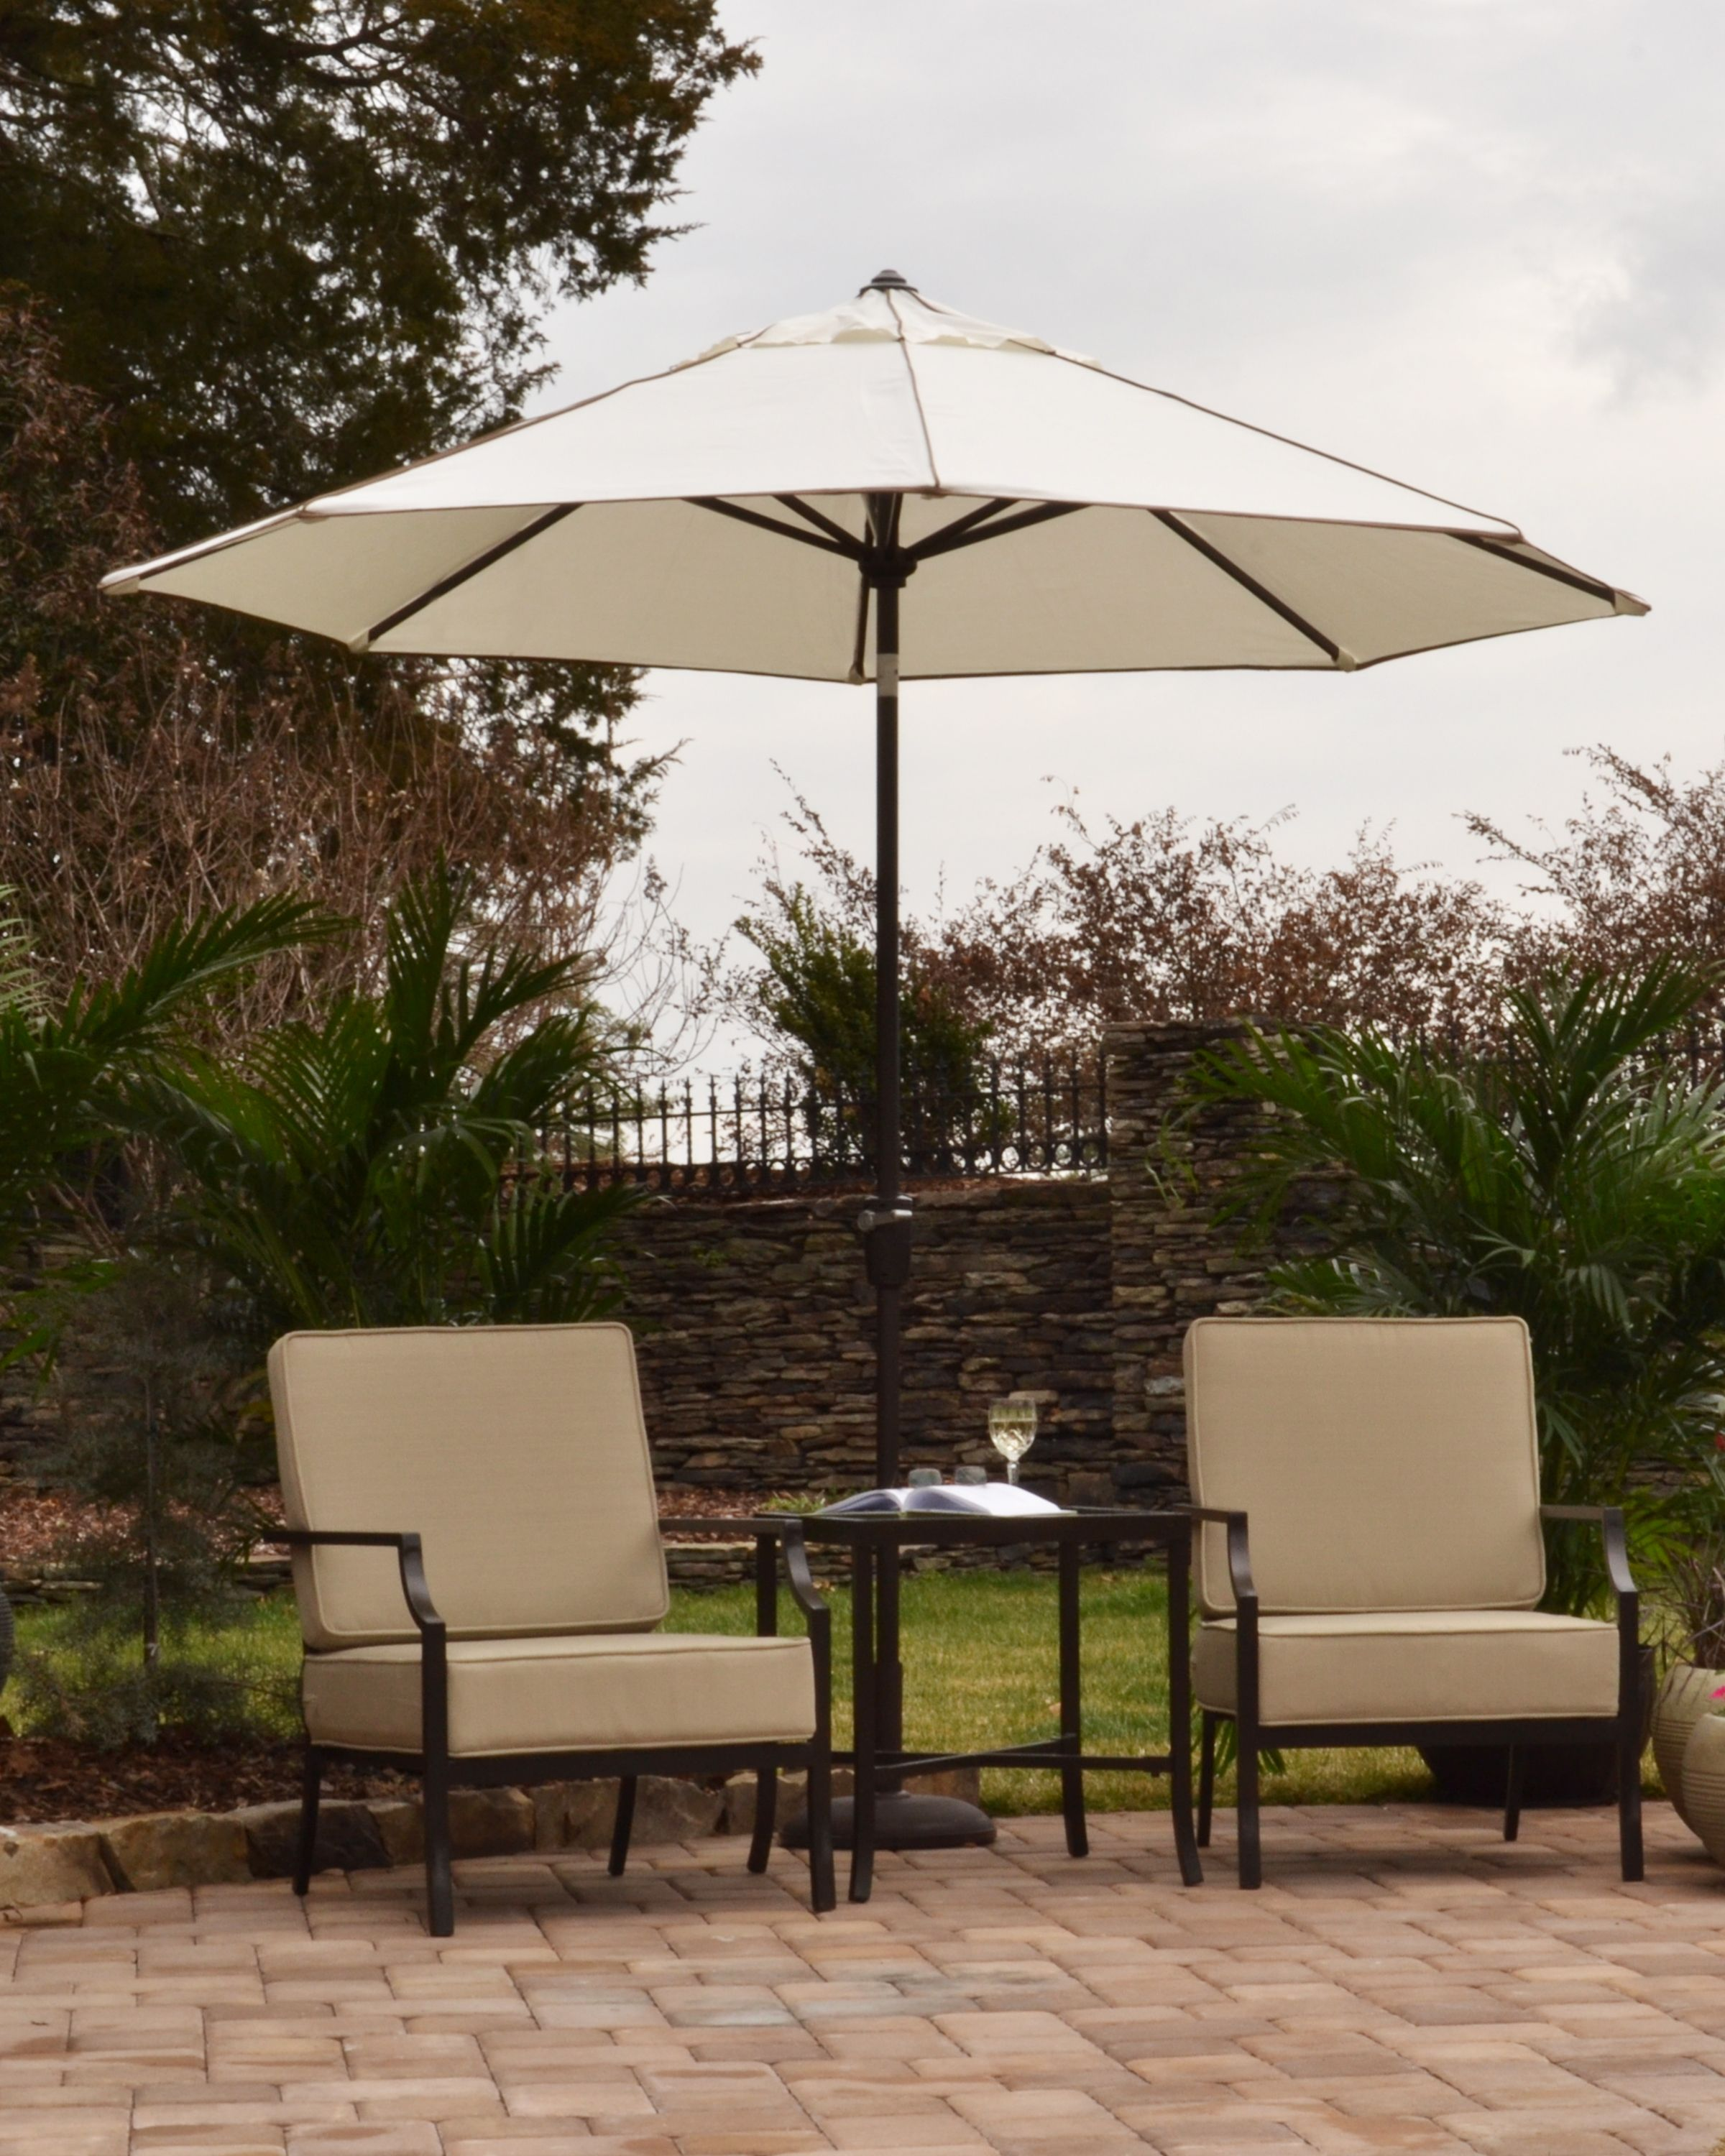 Patio Umbrella Crank Diagram: Scott Living Crank & Tilt Umbrella With Cover